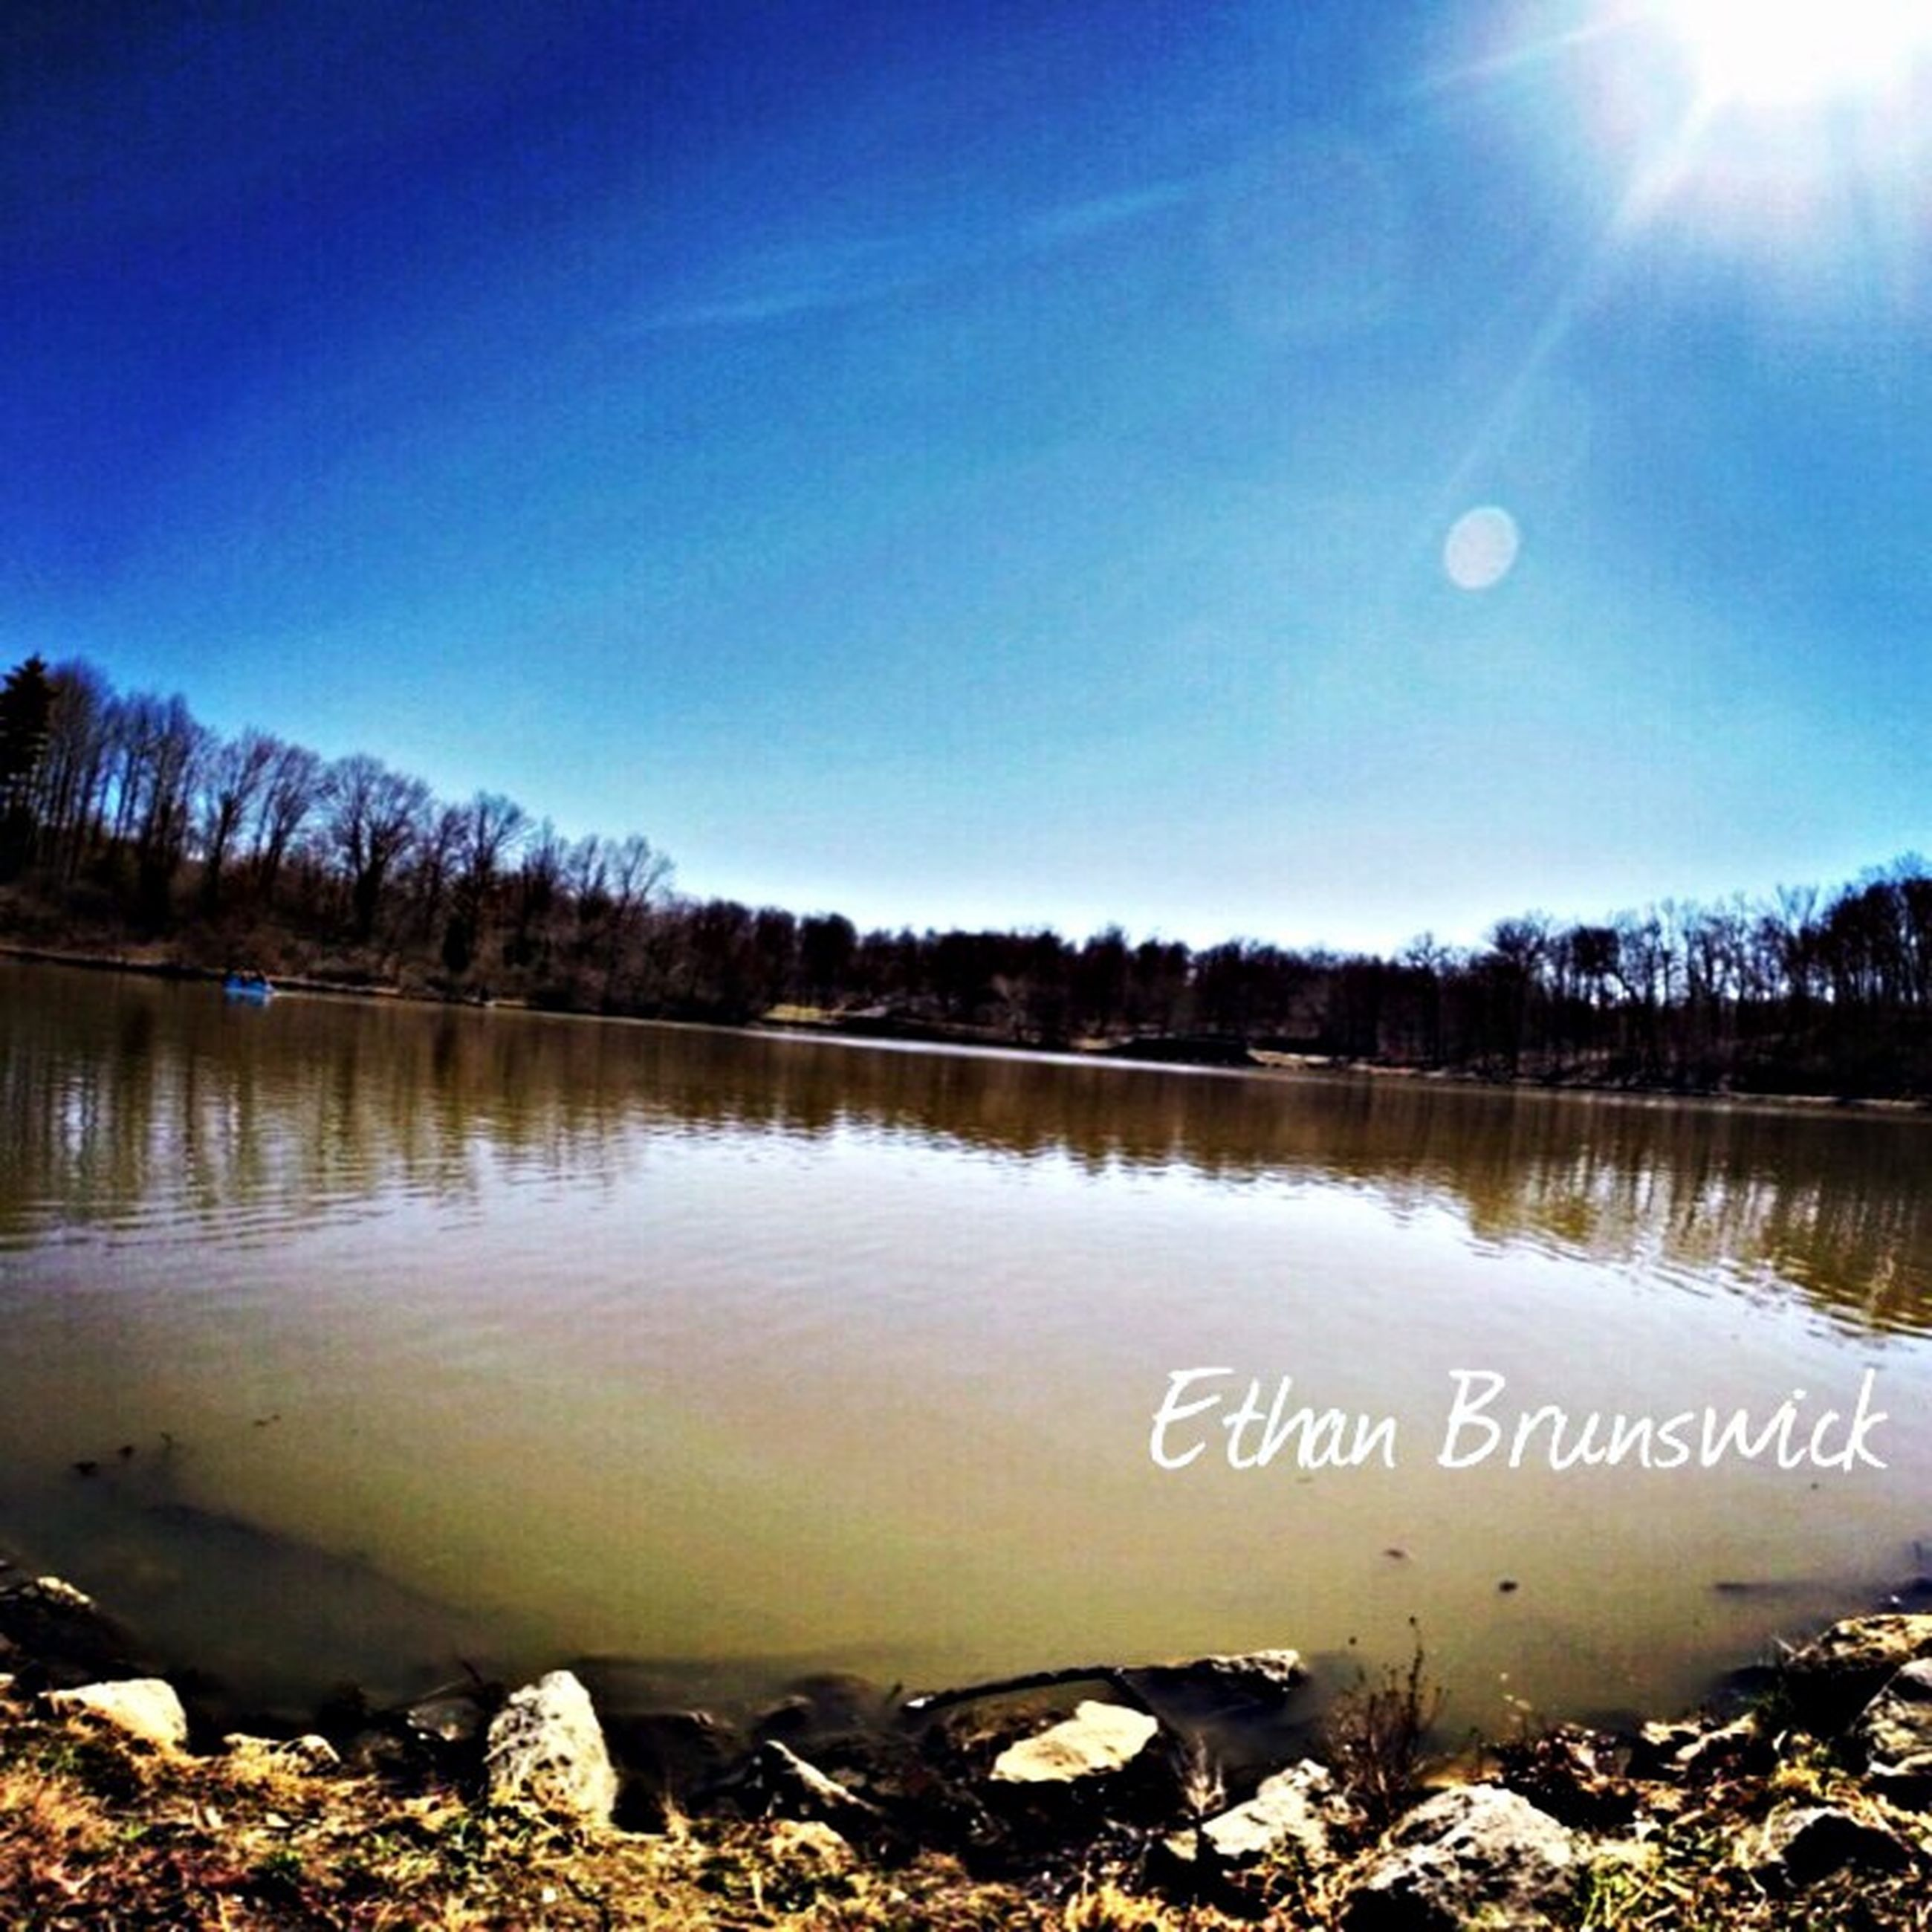 tranquil scene, tranquility, water, lake, scenics, reflection, beauty in nature, nature, clear sky, blue, text, non-urban scene, sunlight, winter, western script, sky, snow, cold temperature, outdoors, idyllic